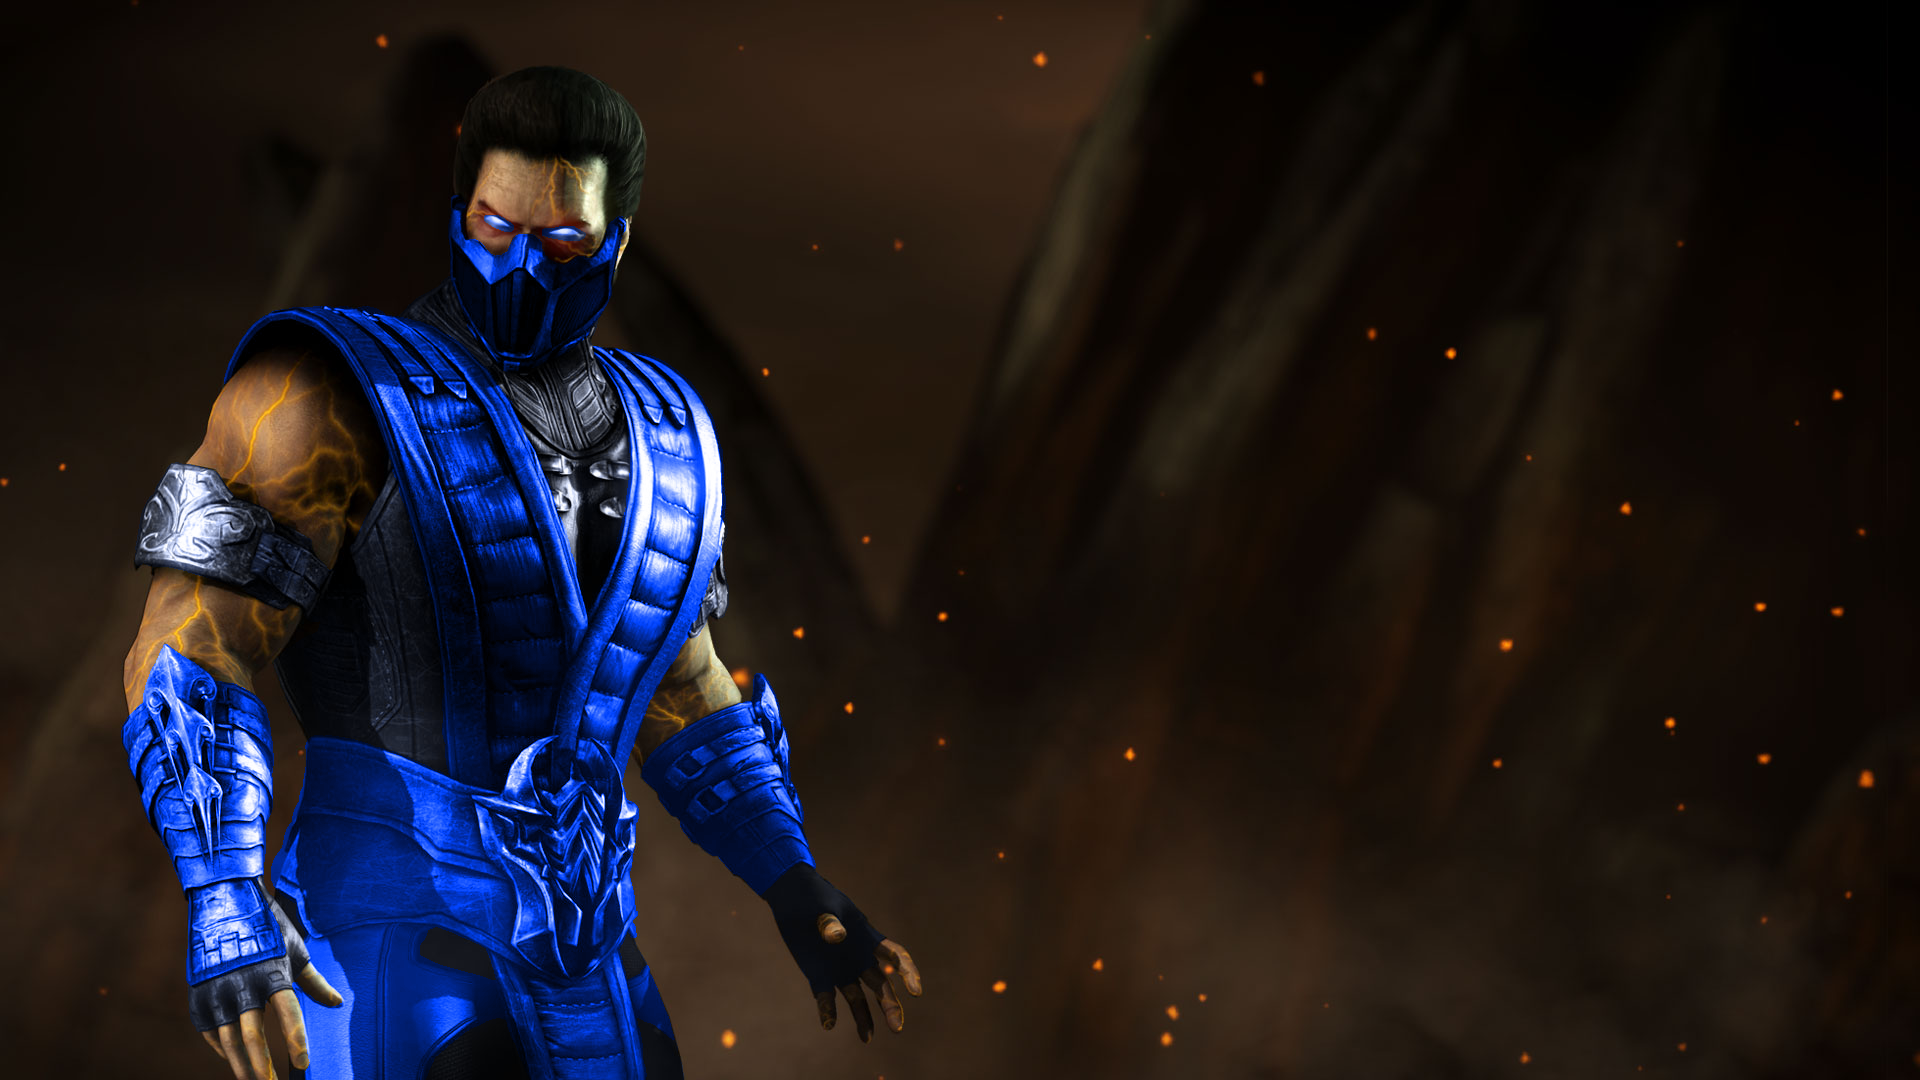 Sub Zero Wallpaper Hd Posted By Sarah Anderson